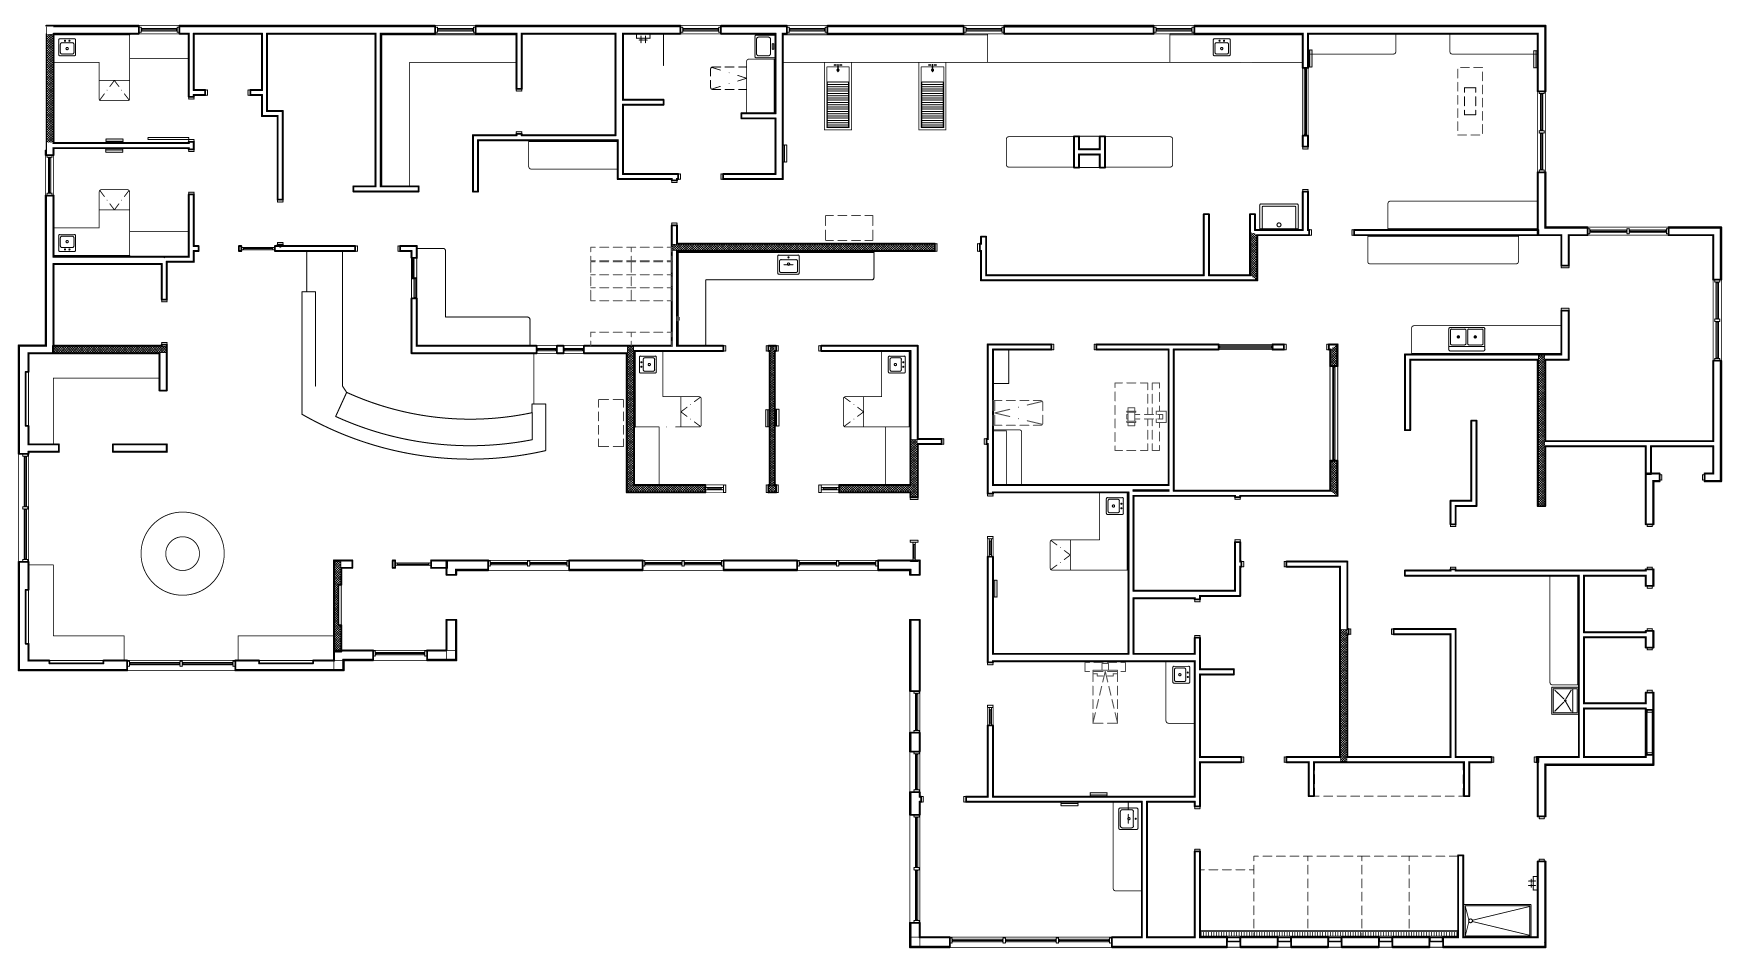 Small hospital floor plan design for Pharmacy floor plan